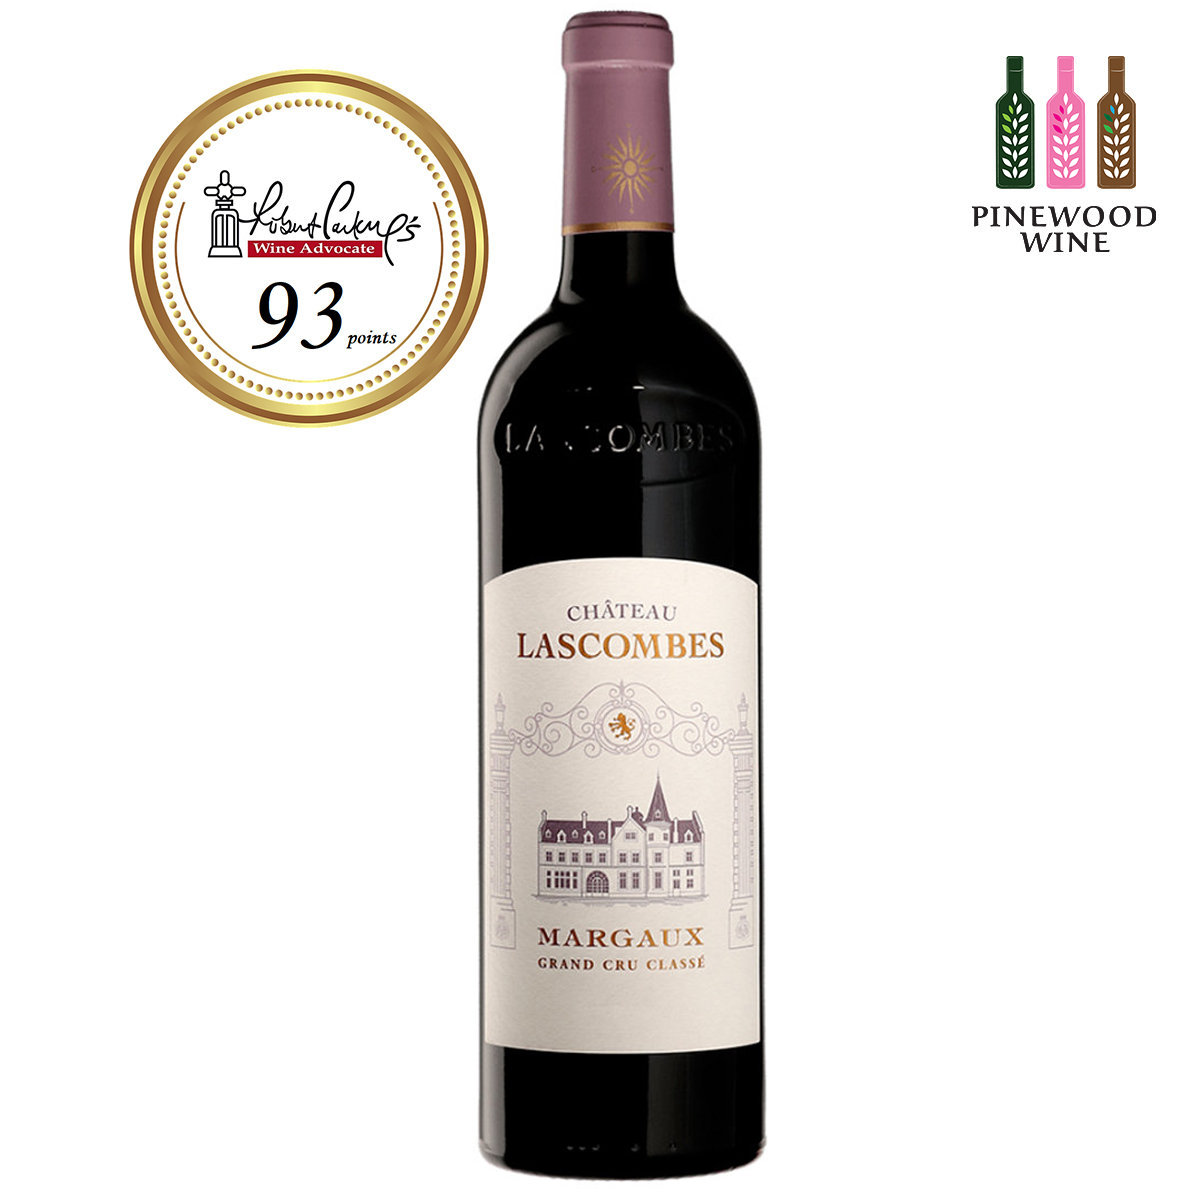 2004, RP 93 Margaux